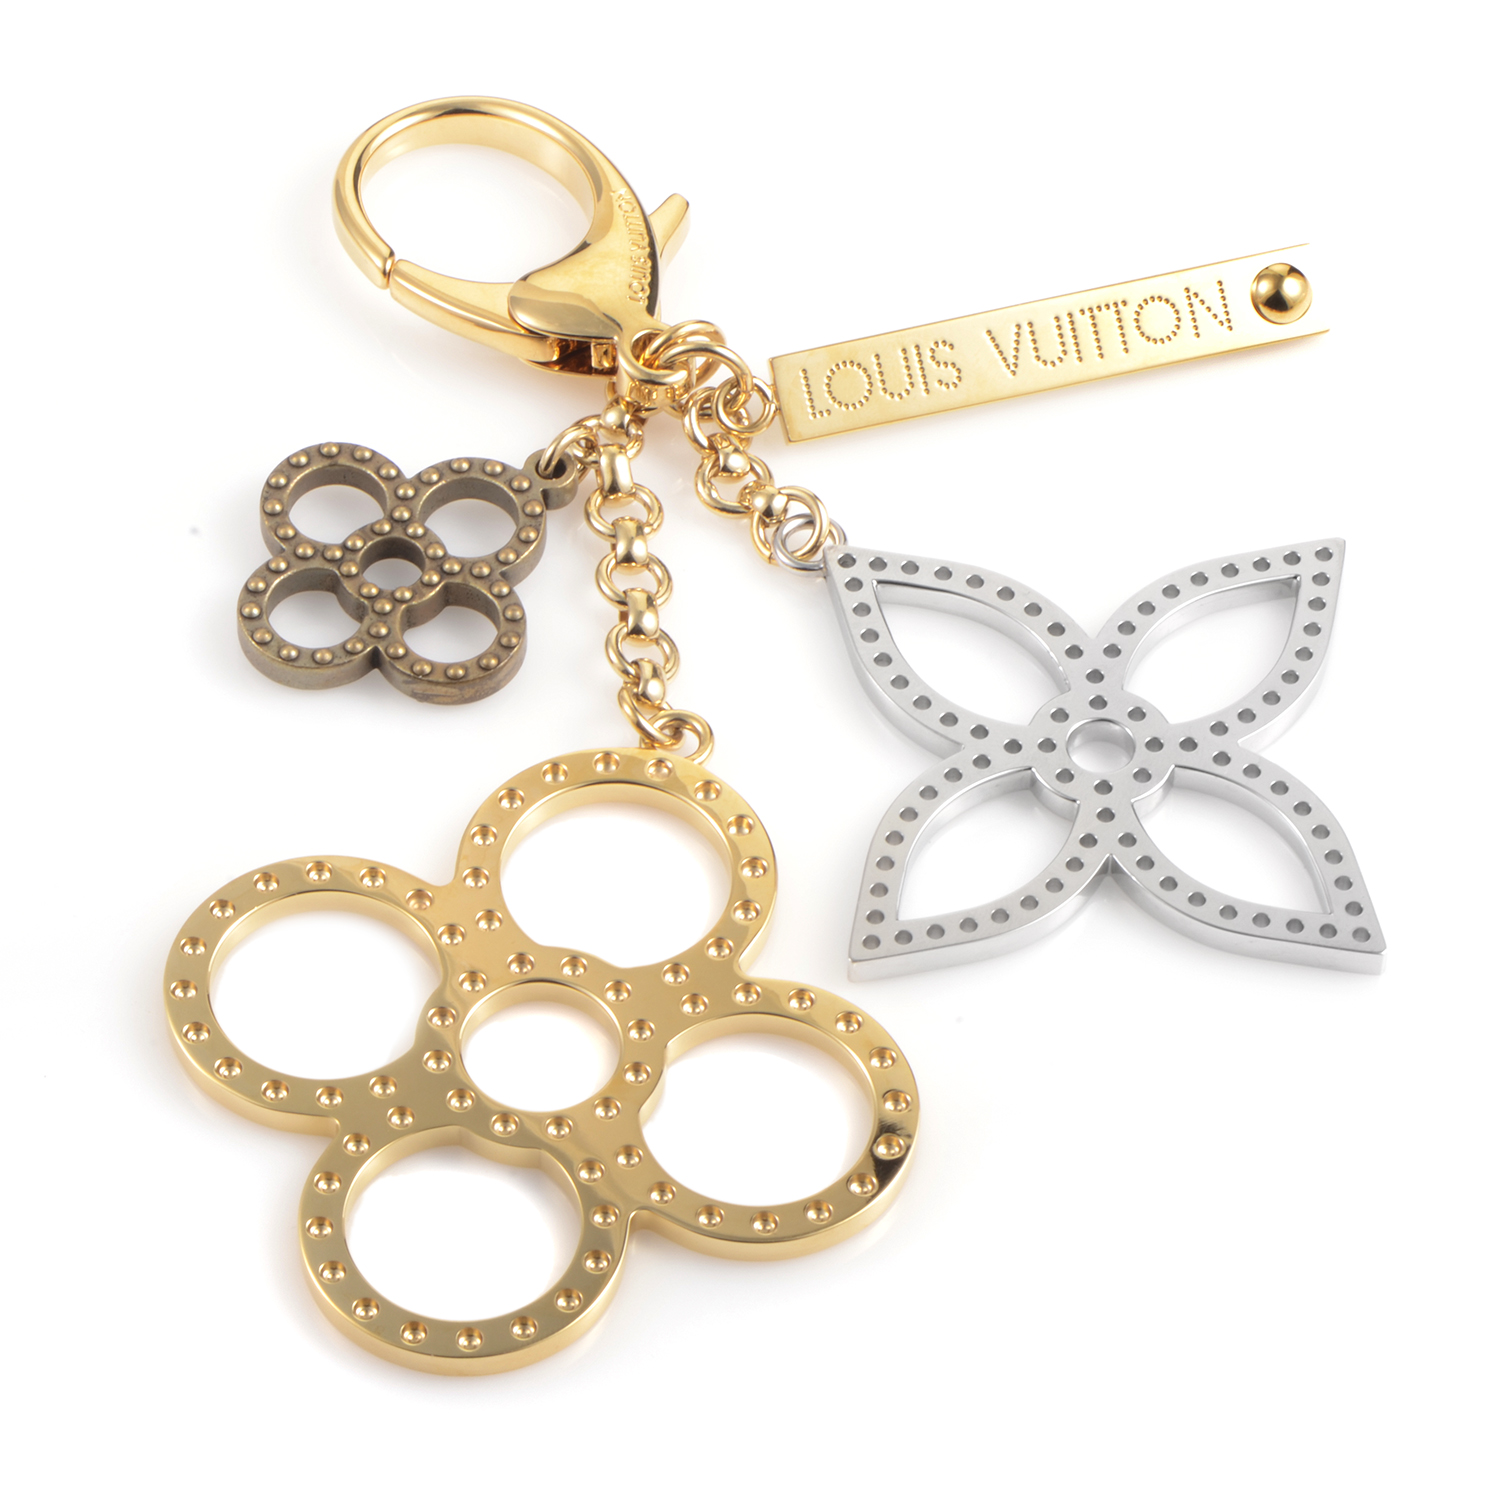 Women's Brass & Stainless Steel Bag Charm